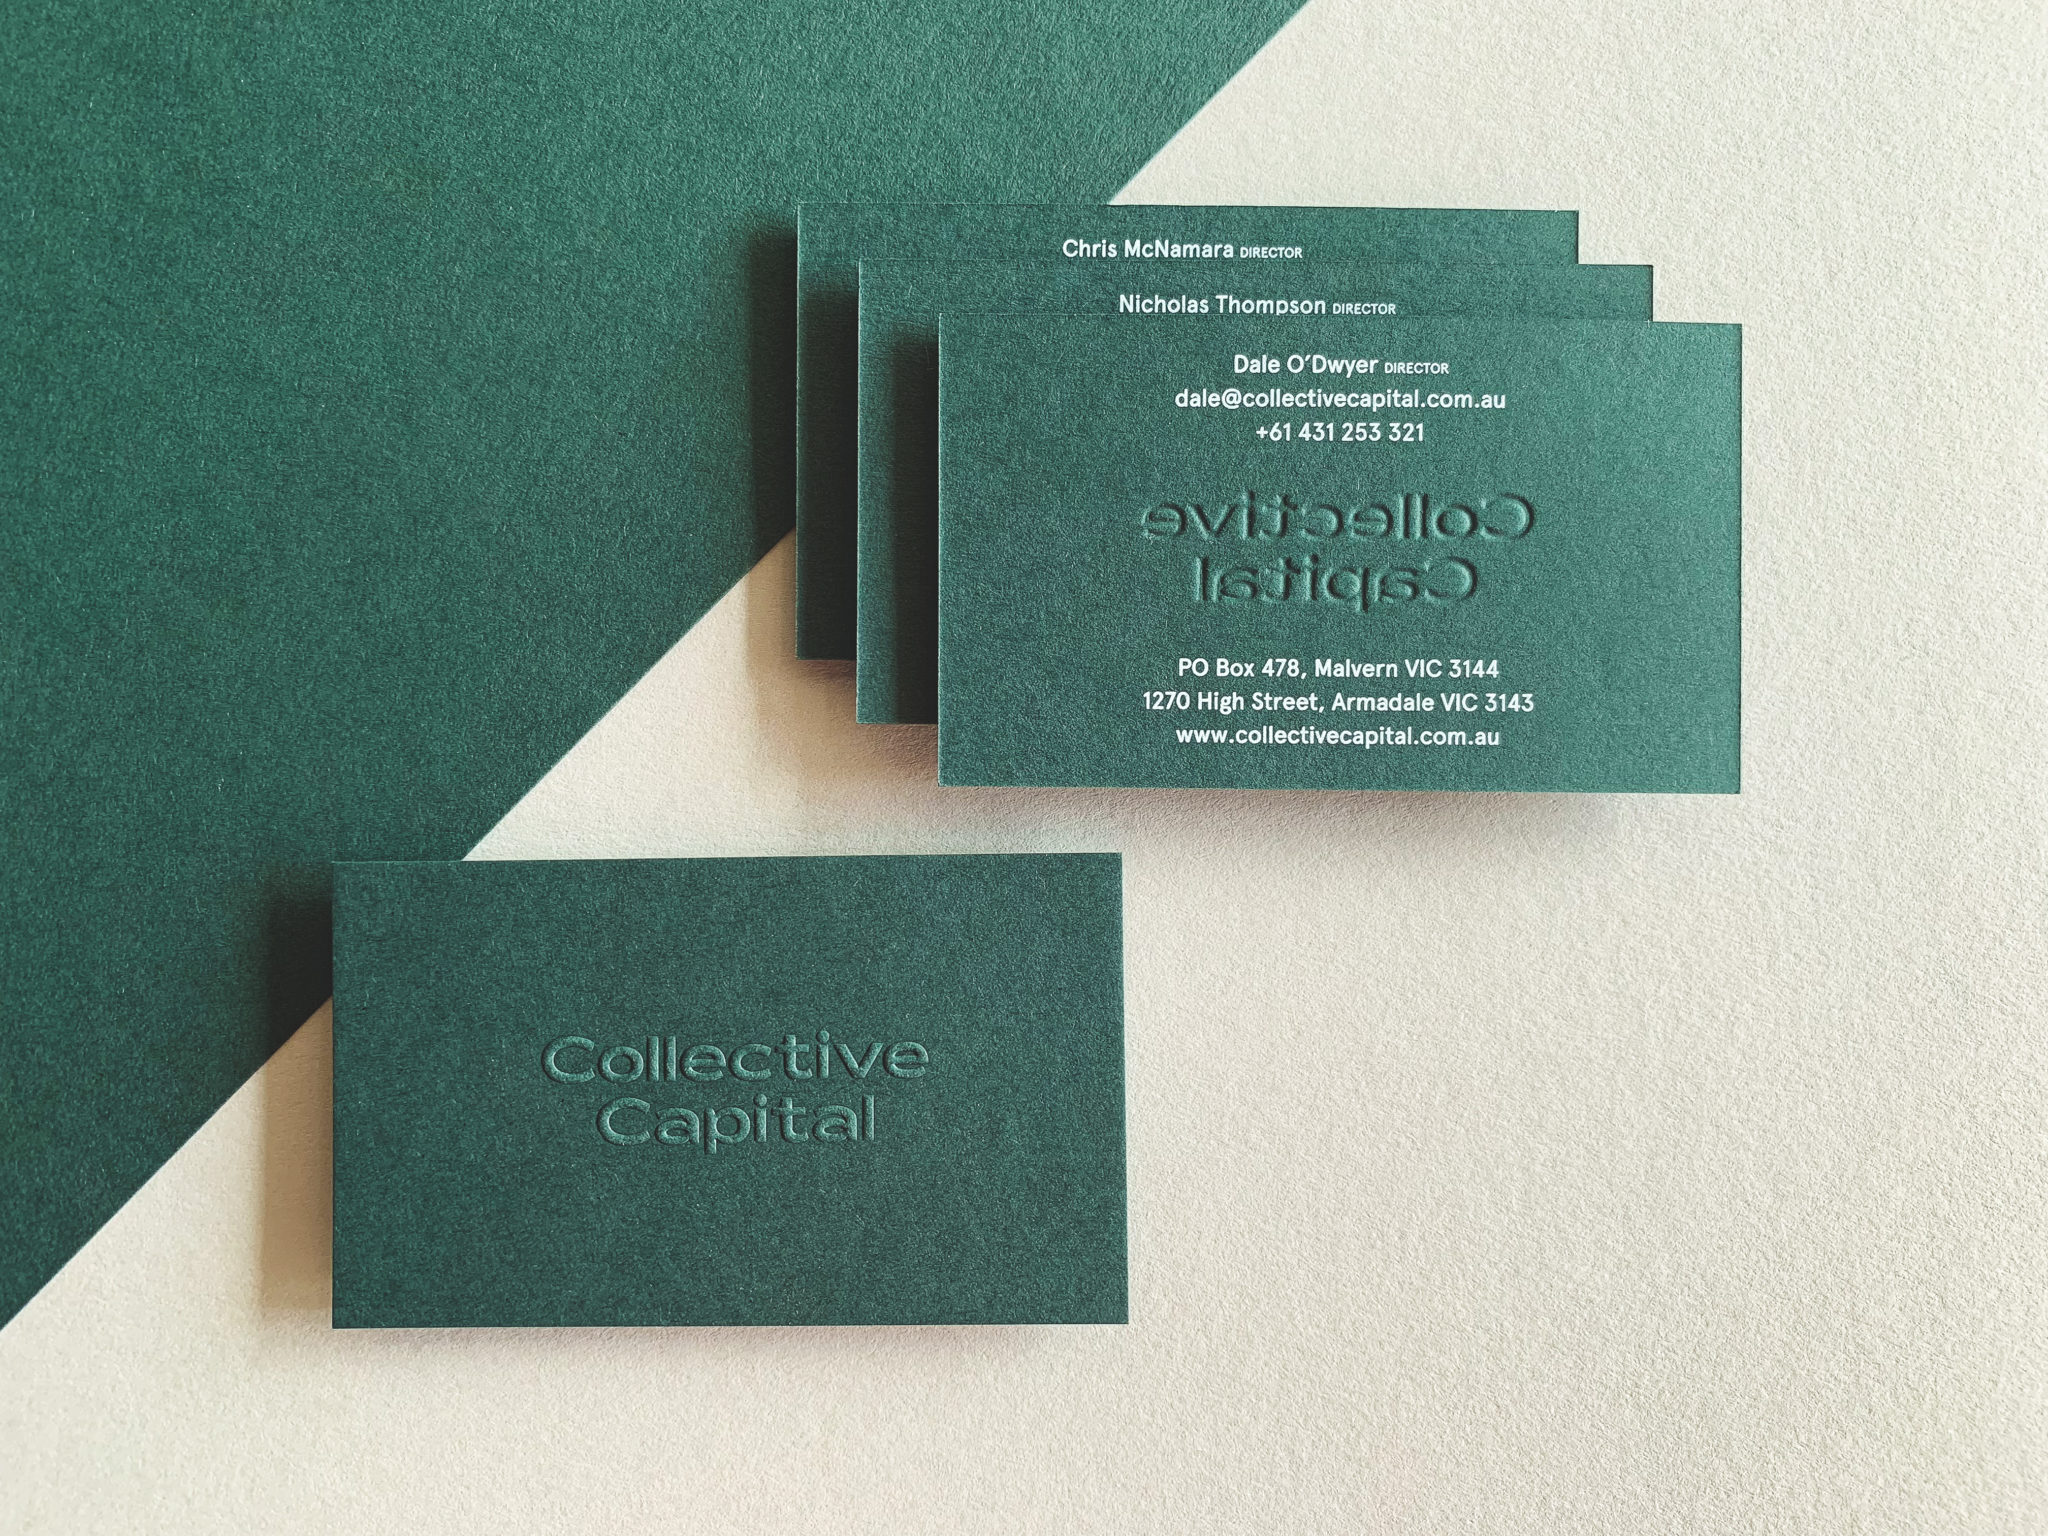 Embossed Opaque White Digital Business Cards for Collective Capital on Colorplan 1